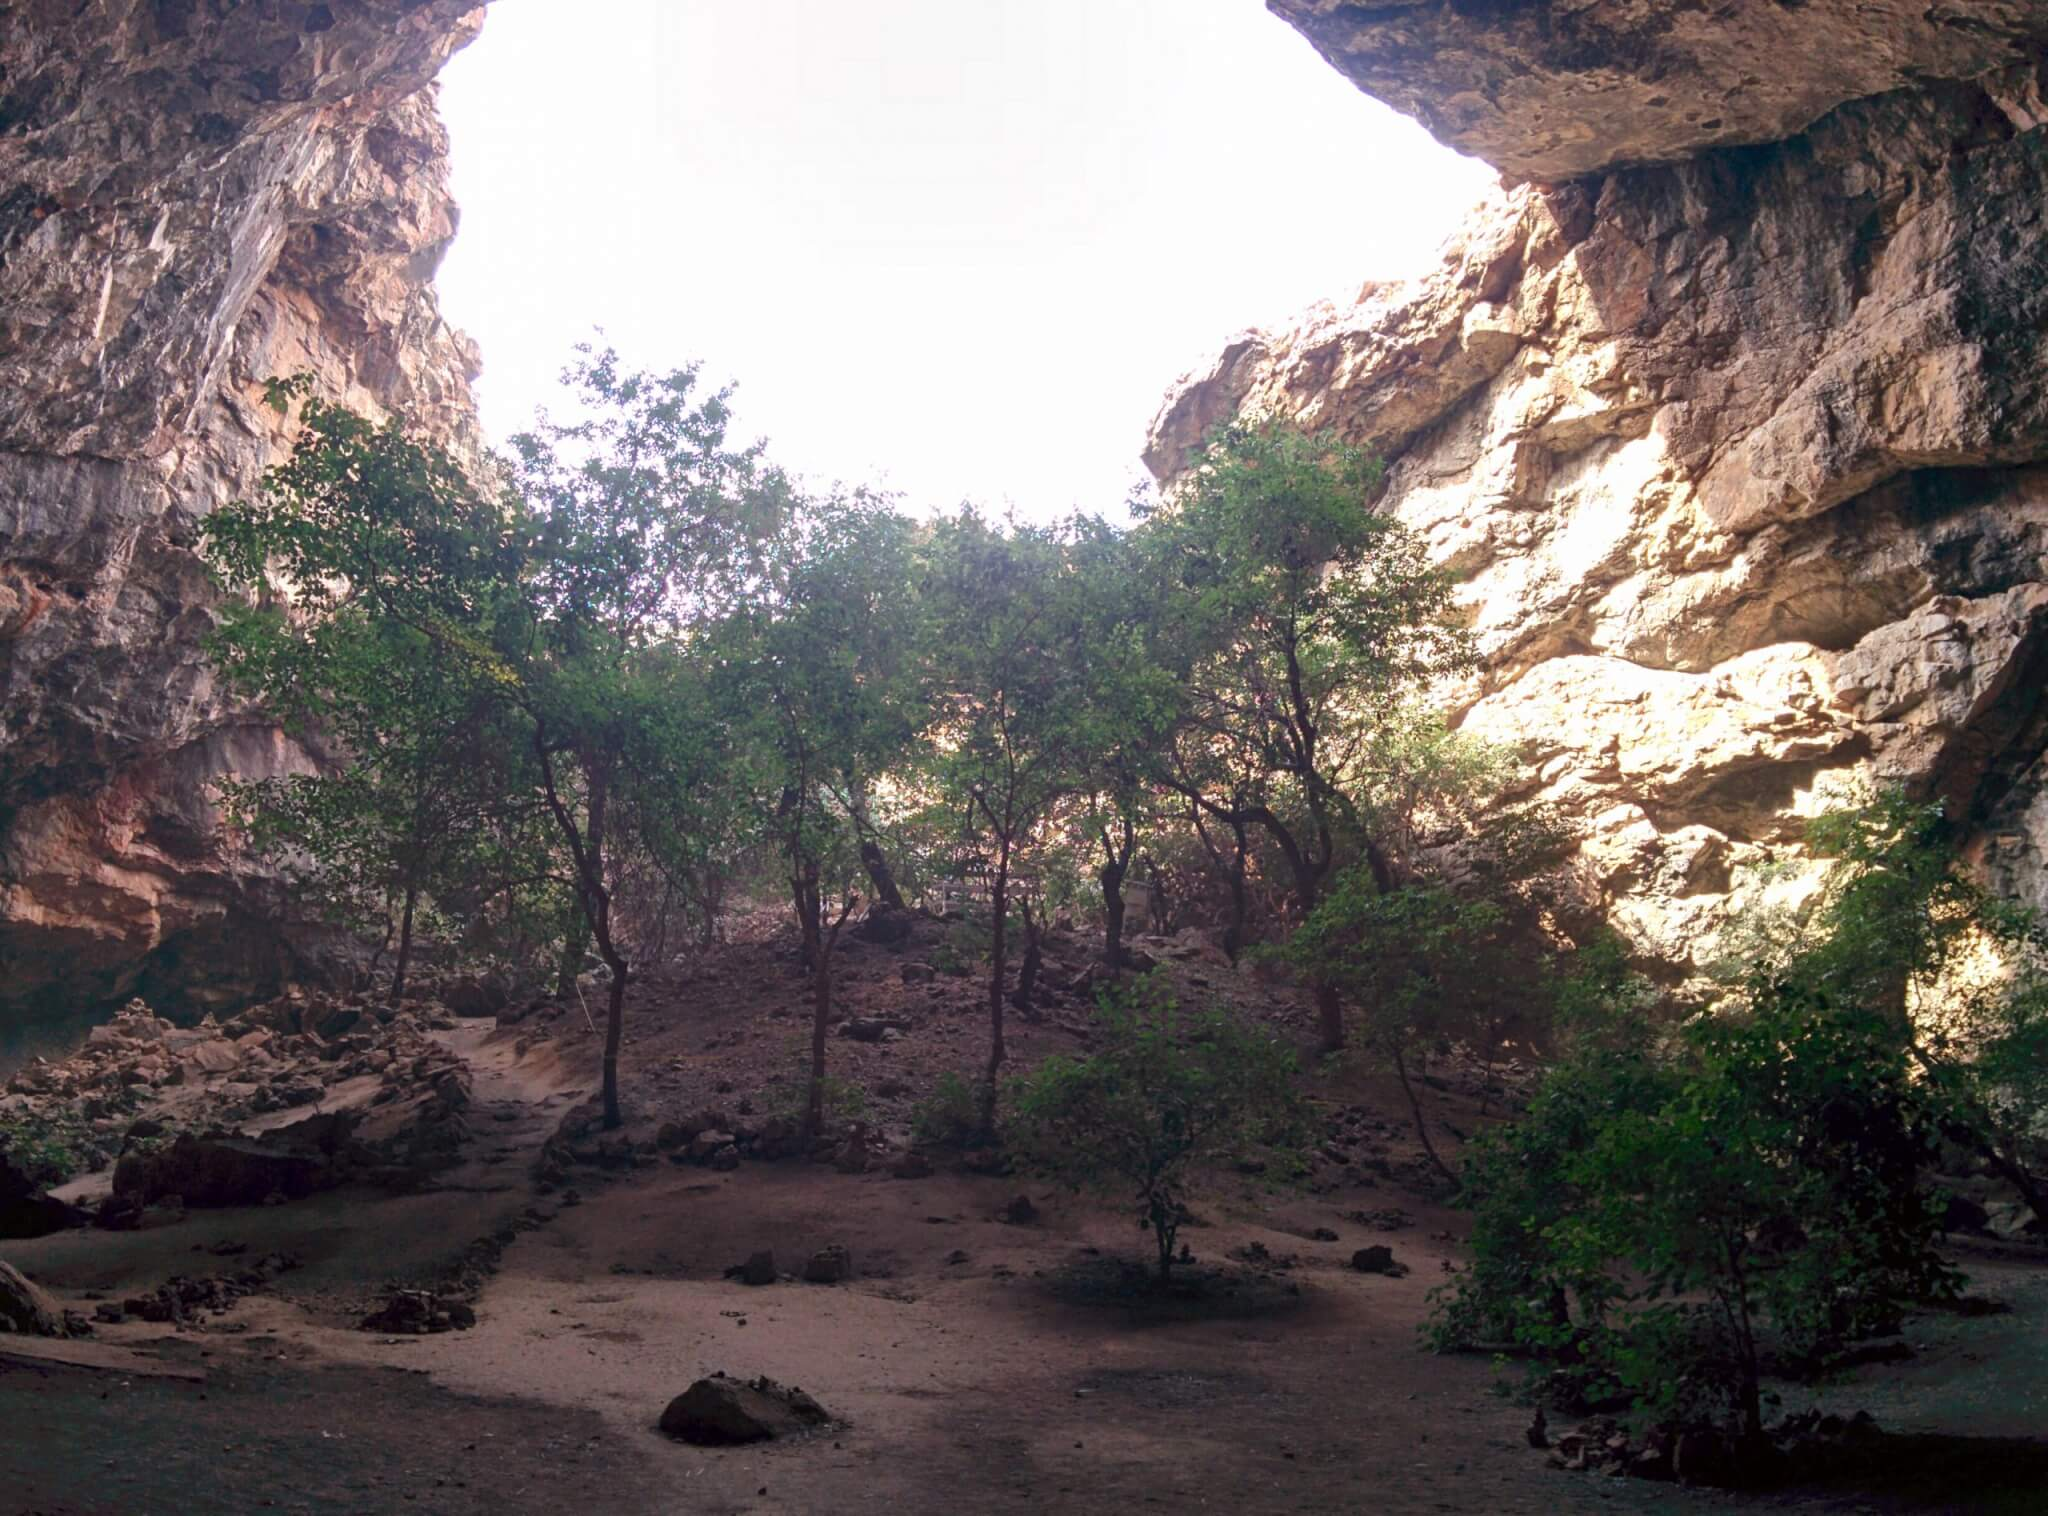 Akmechet cave is close to Shymkent